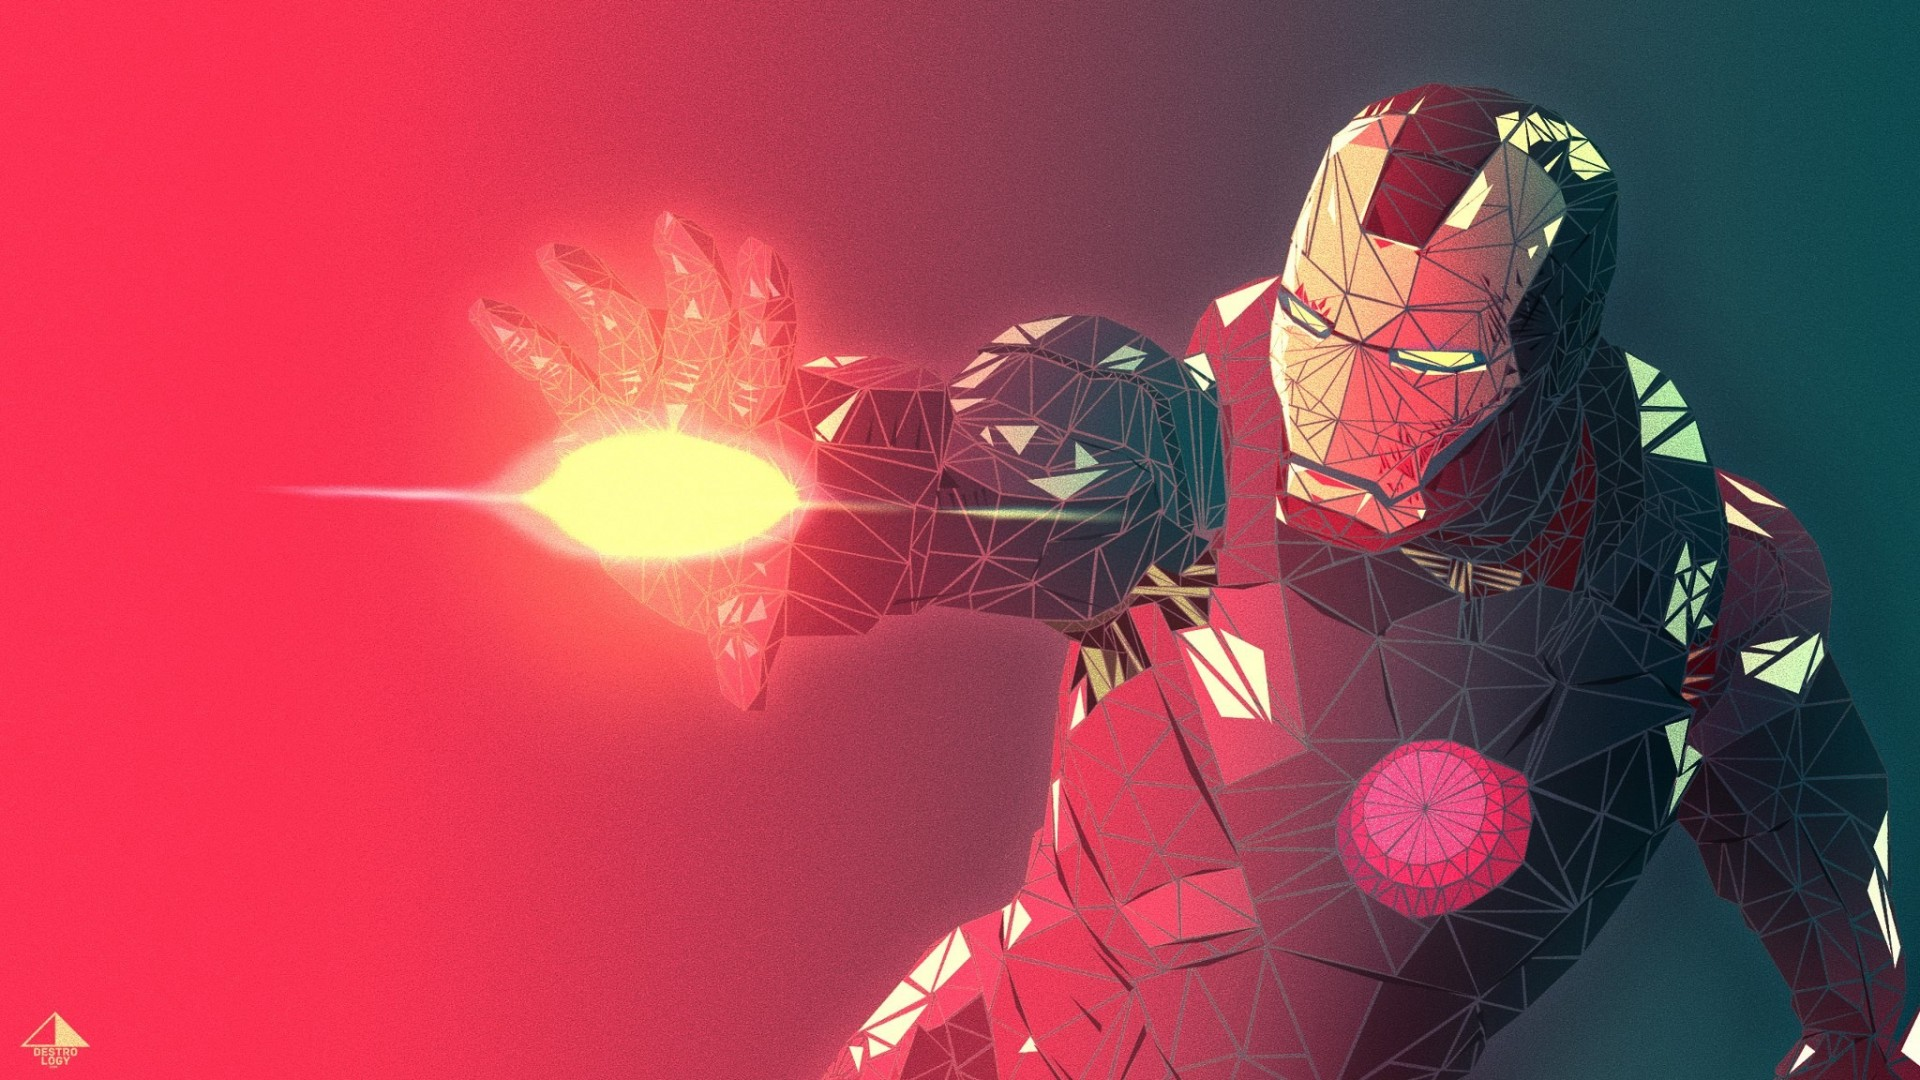 Low Poly Iphone X Wallpaper Iron Man Low Poly Wallpapers Hd Wallpapers Id 22399